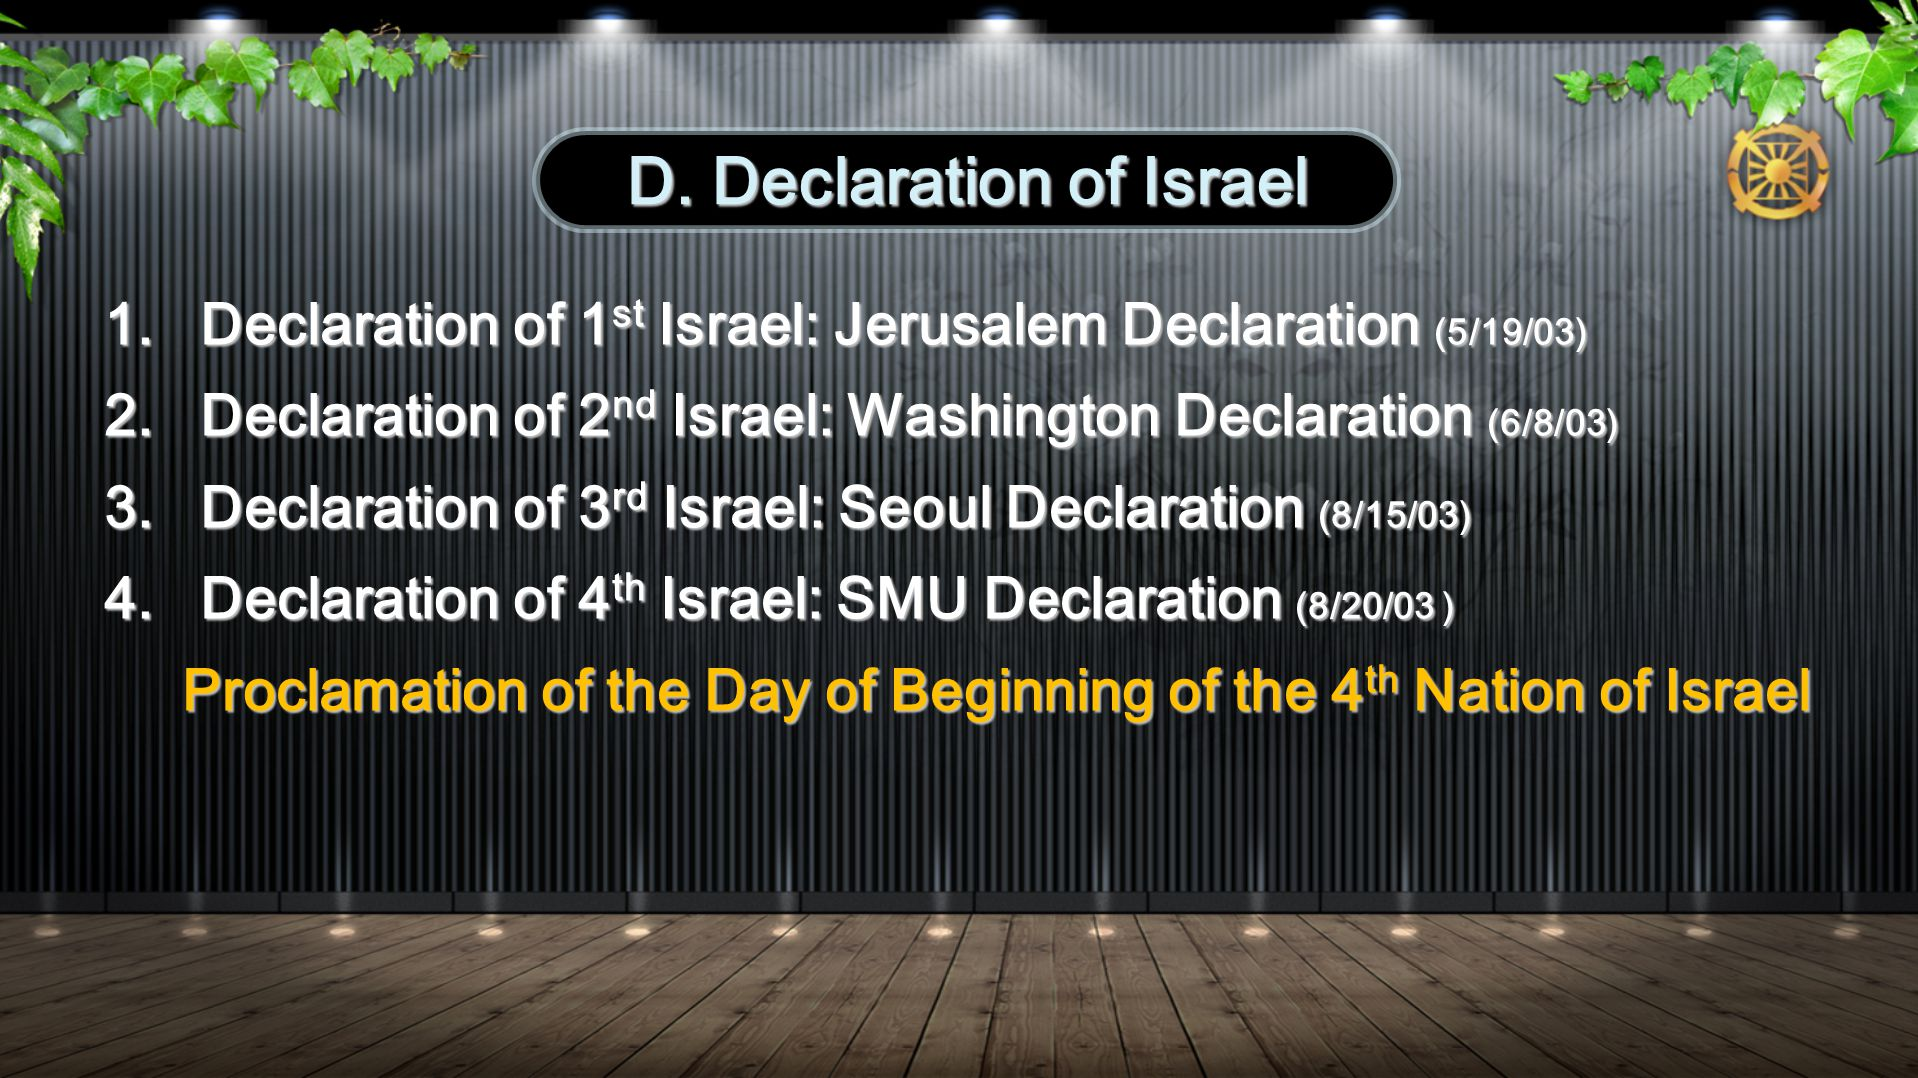 1.Coronation of the King of Peace of the 1 st Israel (12/22/03) 2.